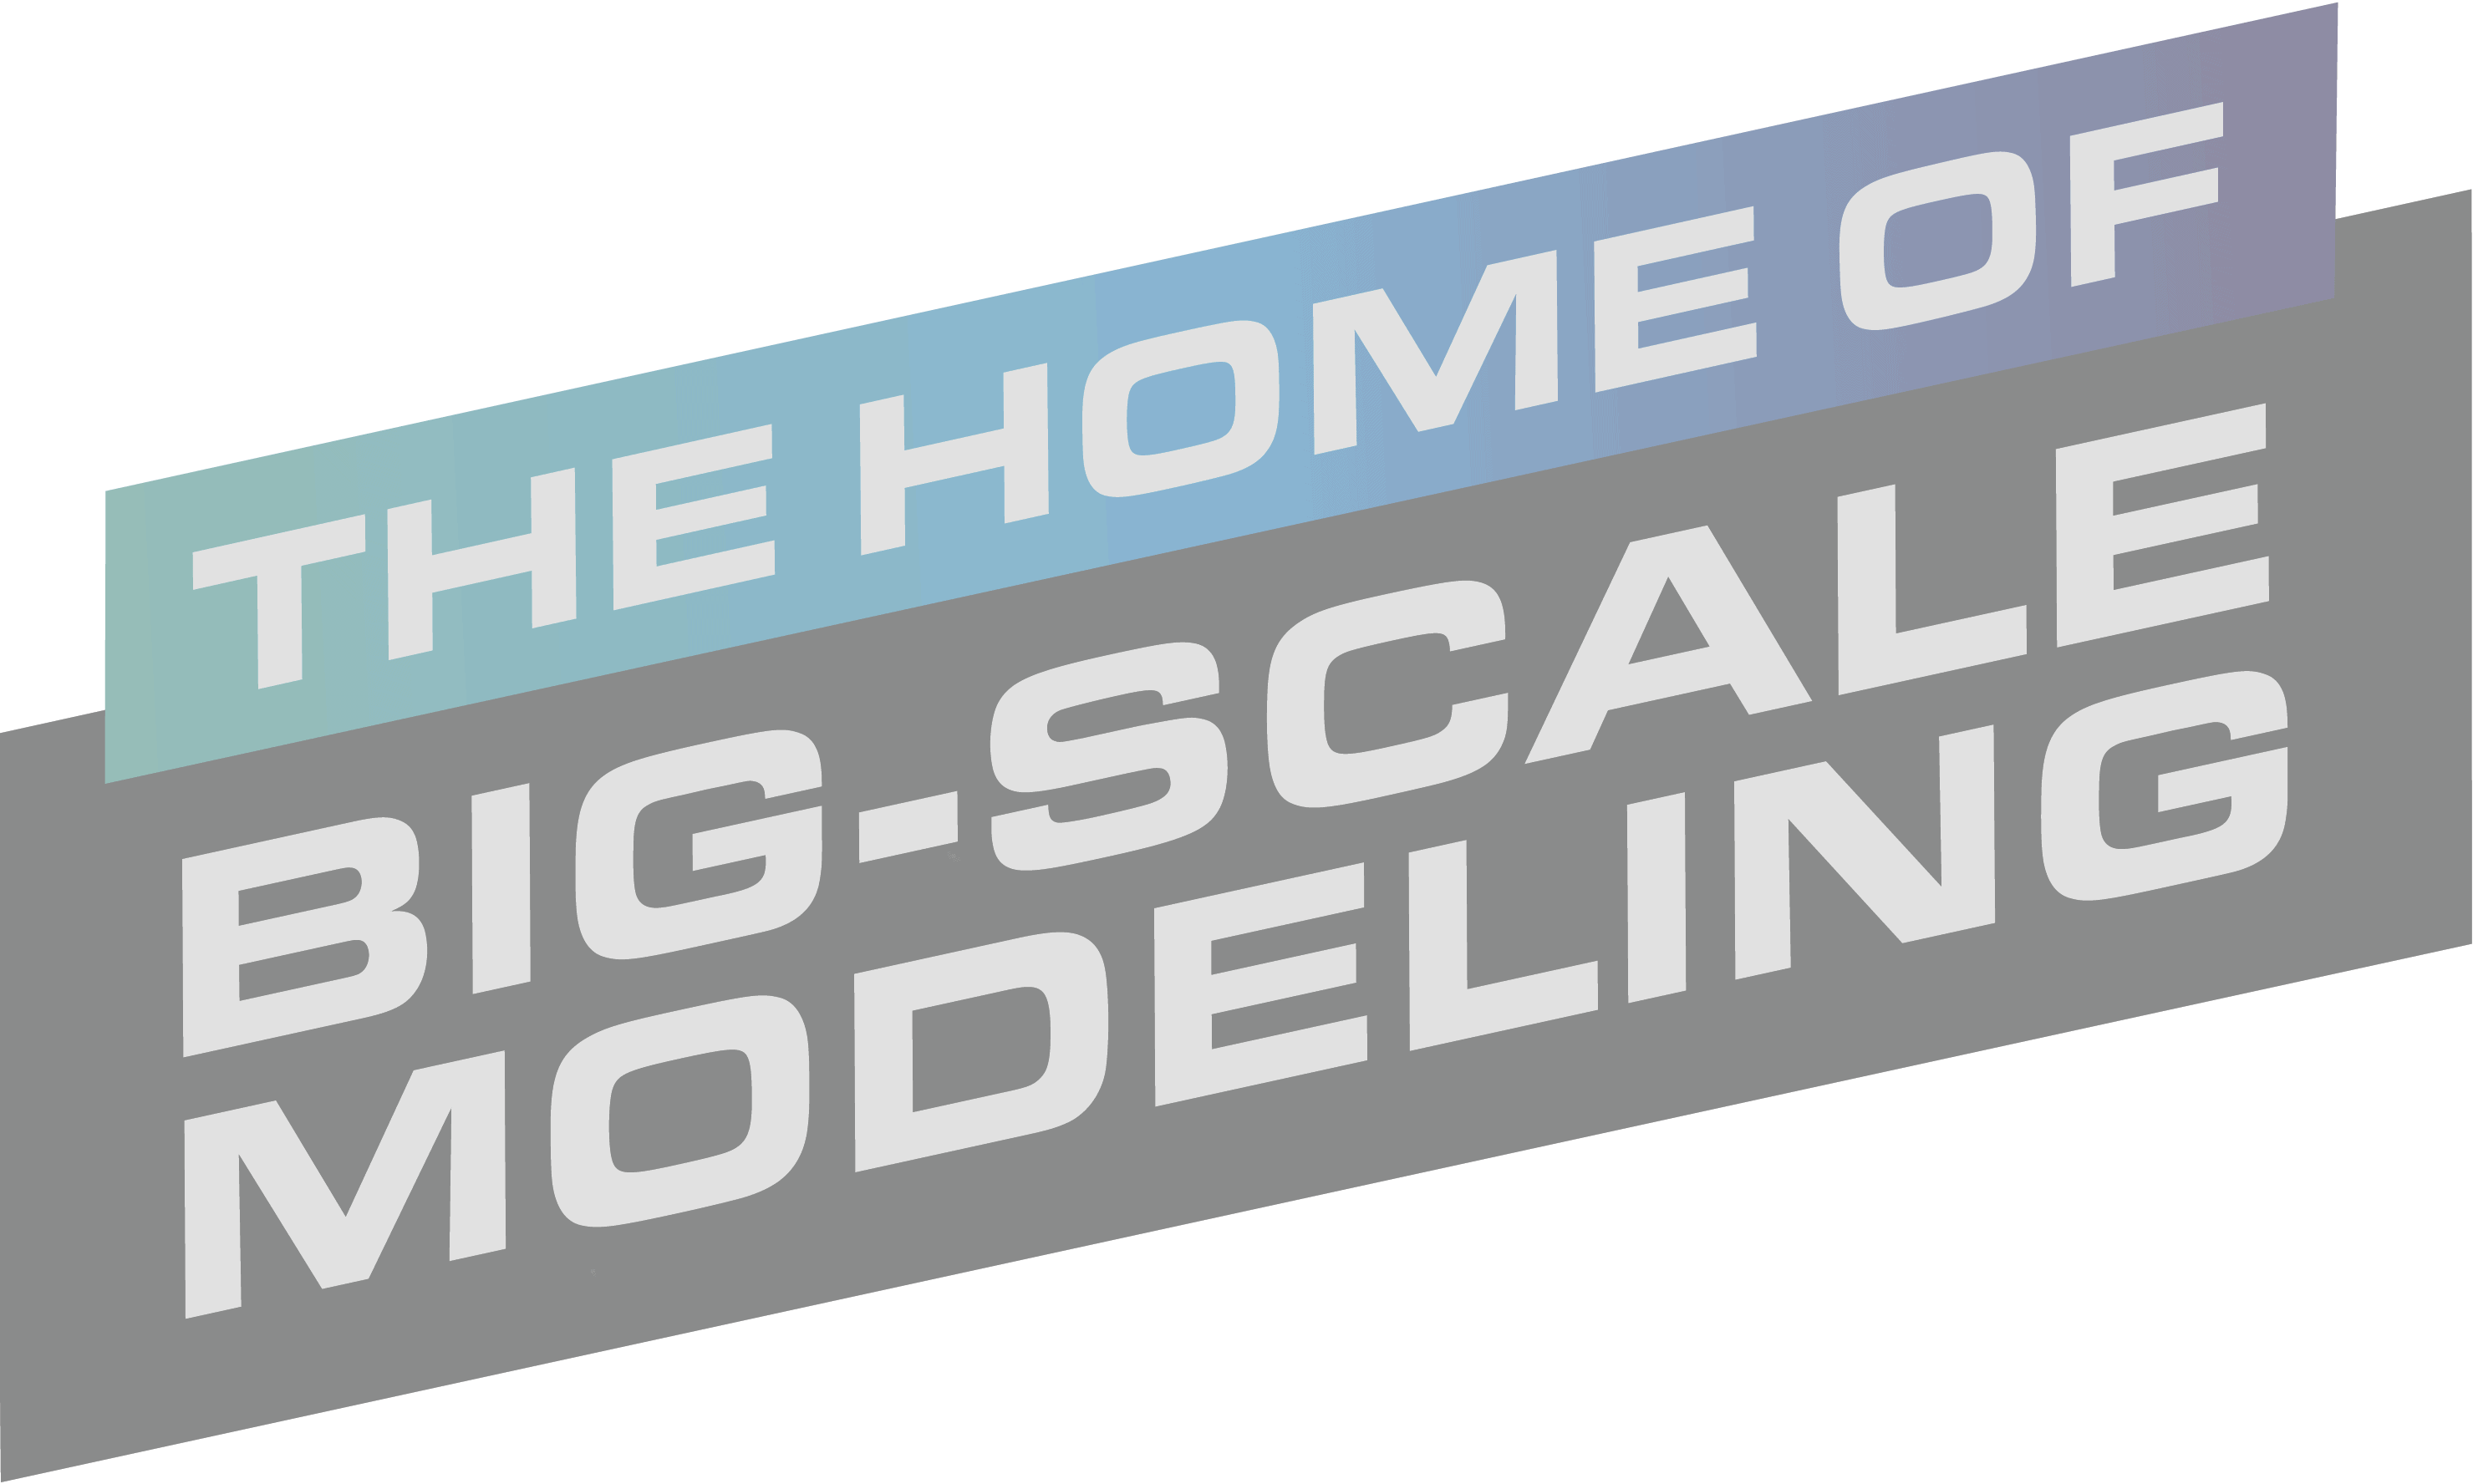 What are Big-Scale Models?